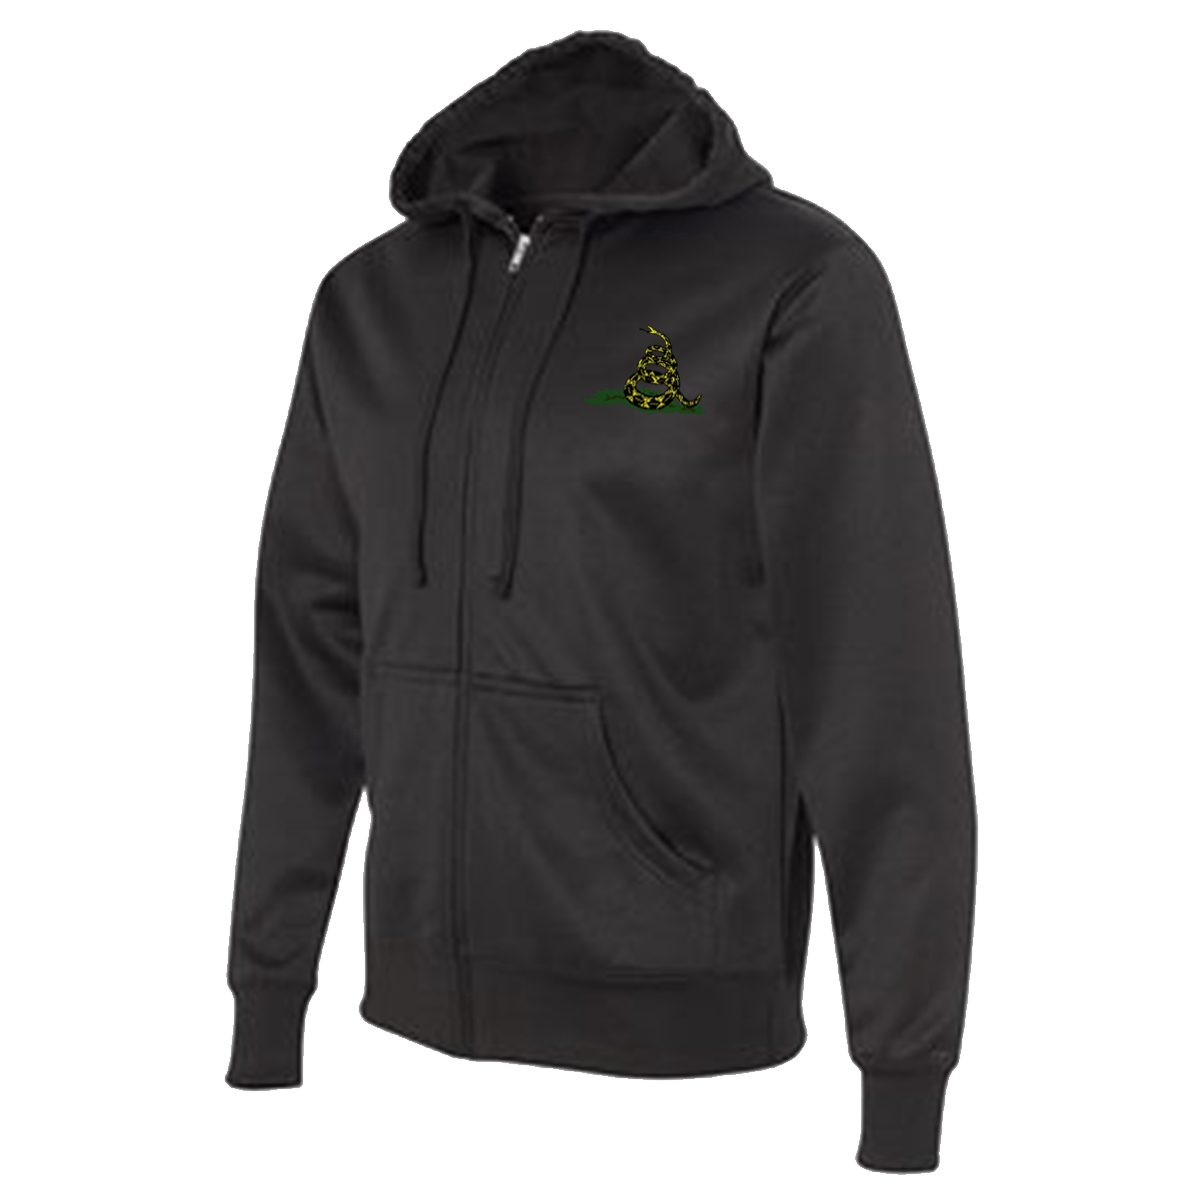 Choose Your Own Independent Zip Up Hoodie